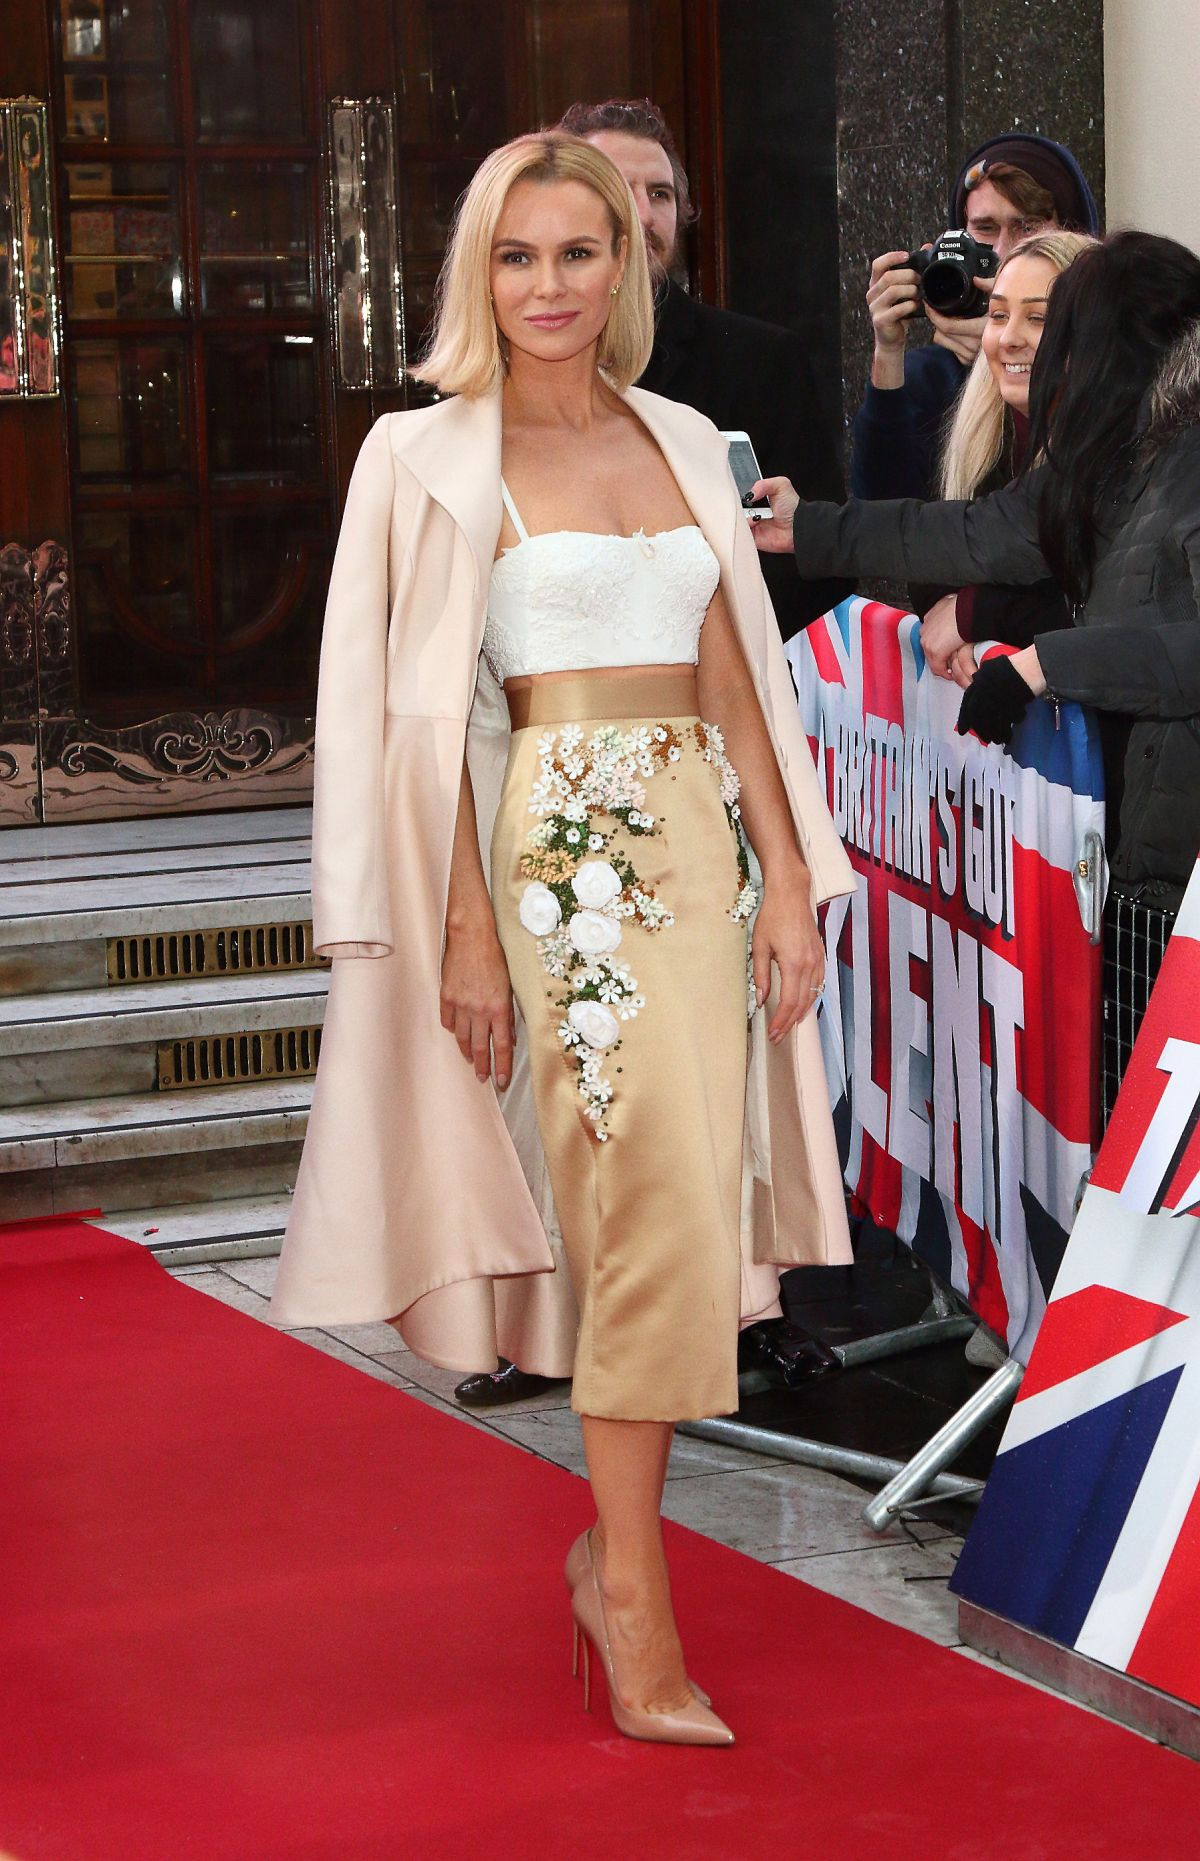 amanda-holden-at-britain-s-got-talent-photocall-in-london-01-29-2017_2.jpg